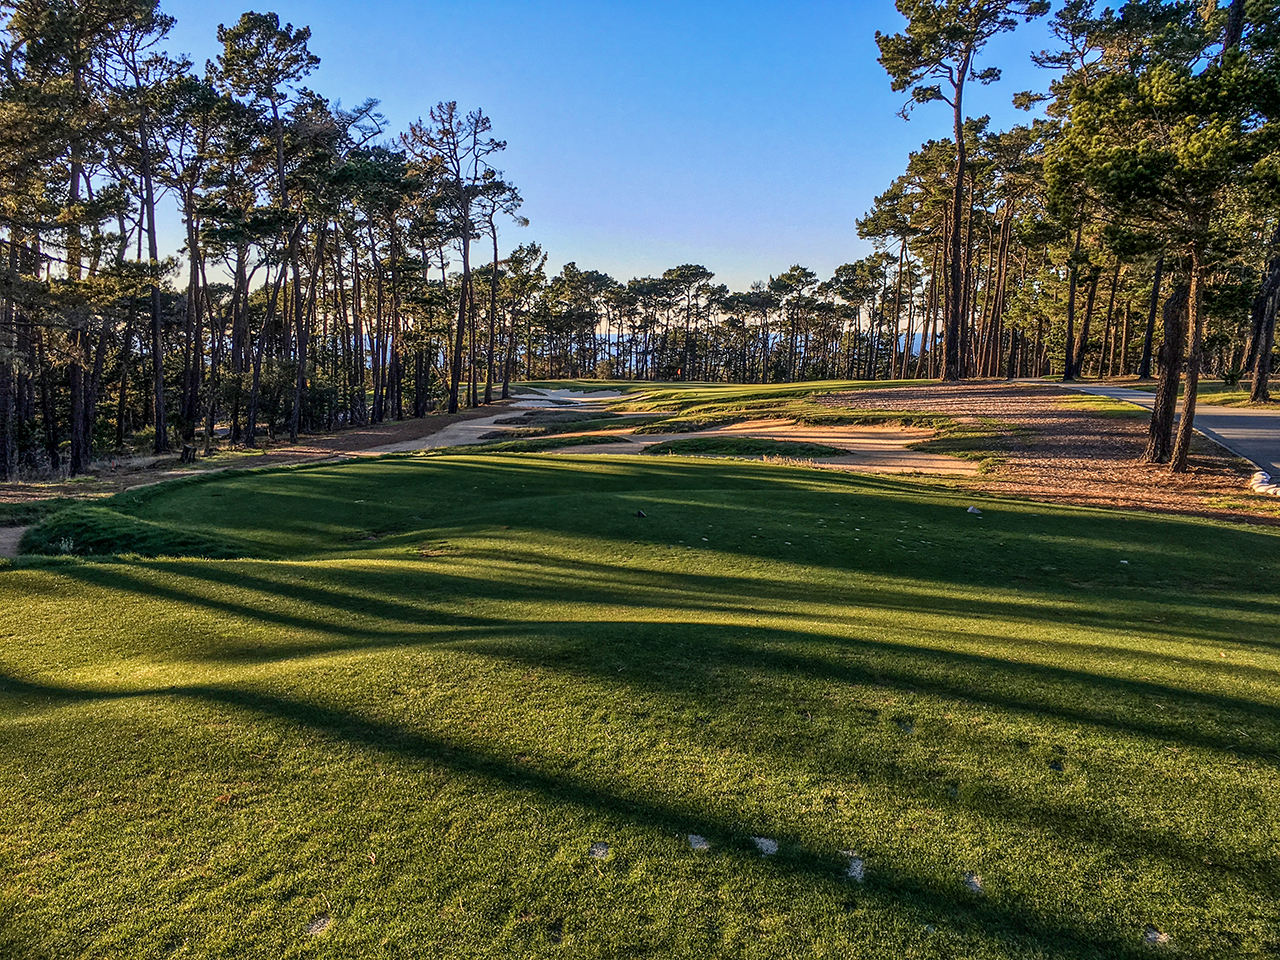 Green golf course fairway surrounded with skinny, tall trees casting a shadow on the grass.